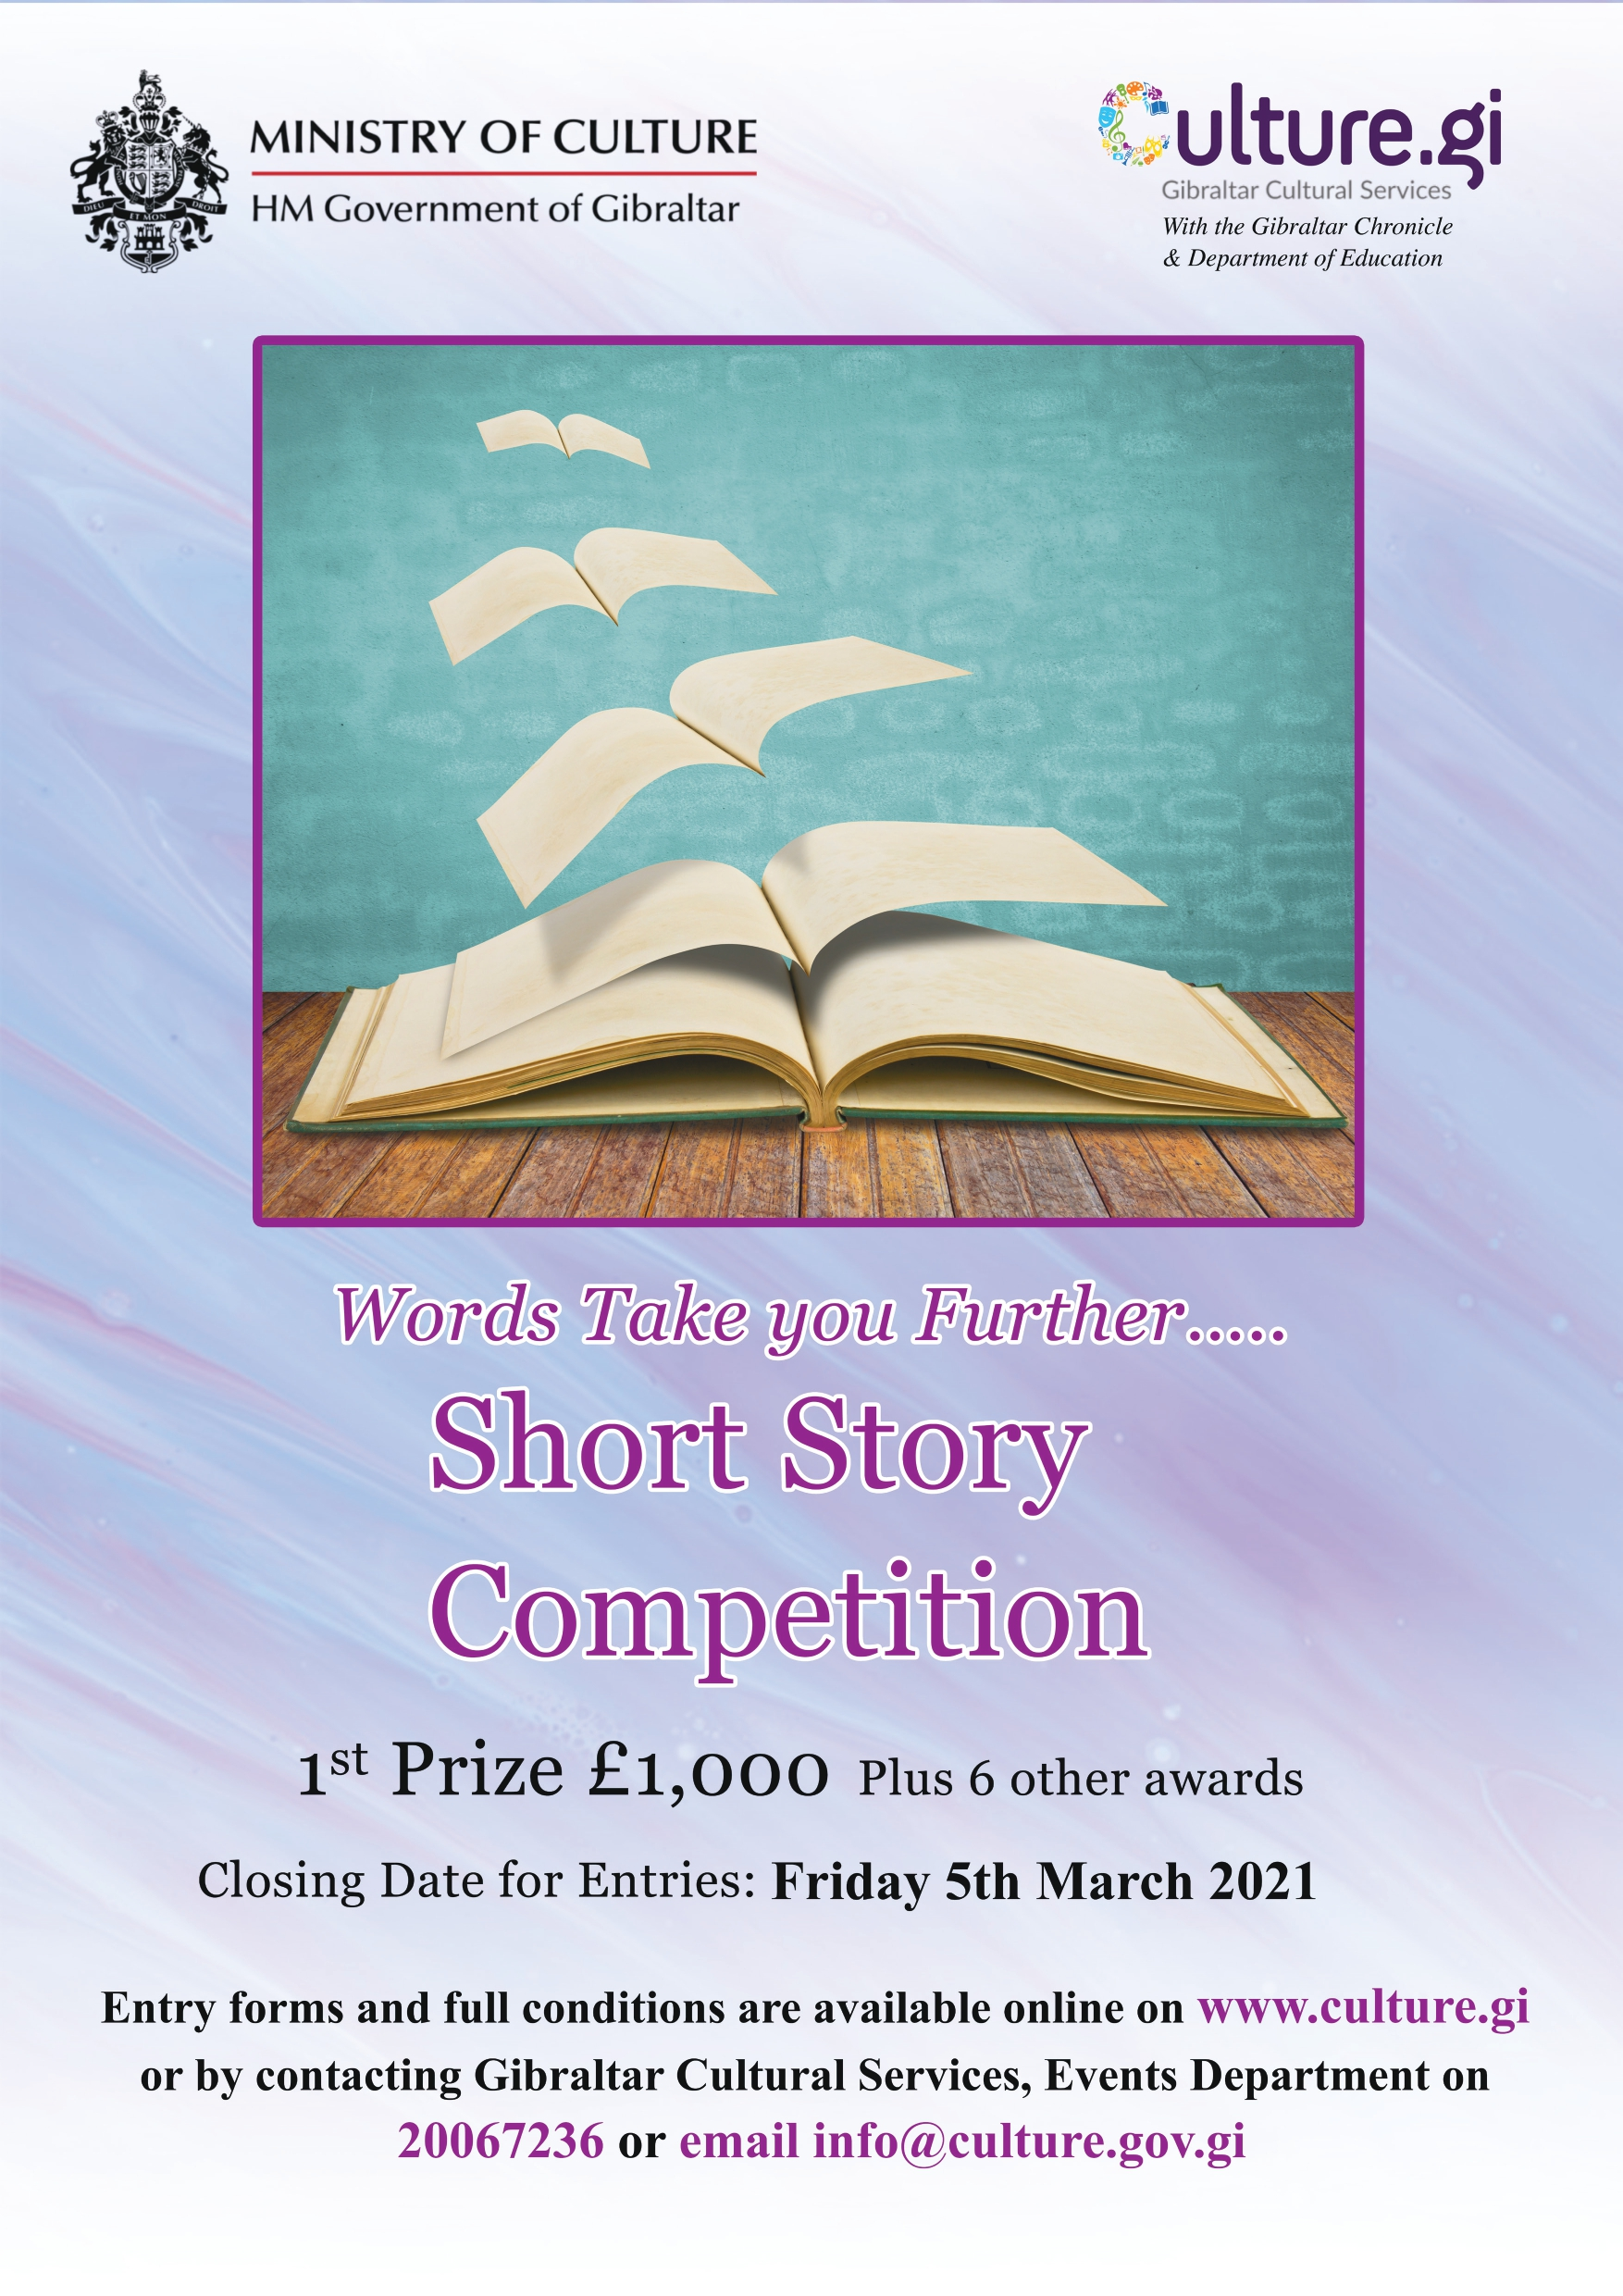 Gibraltar Spring Festival 2021 - Short Story Competition Image